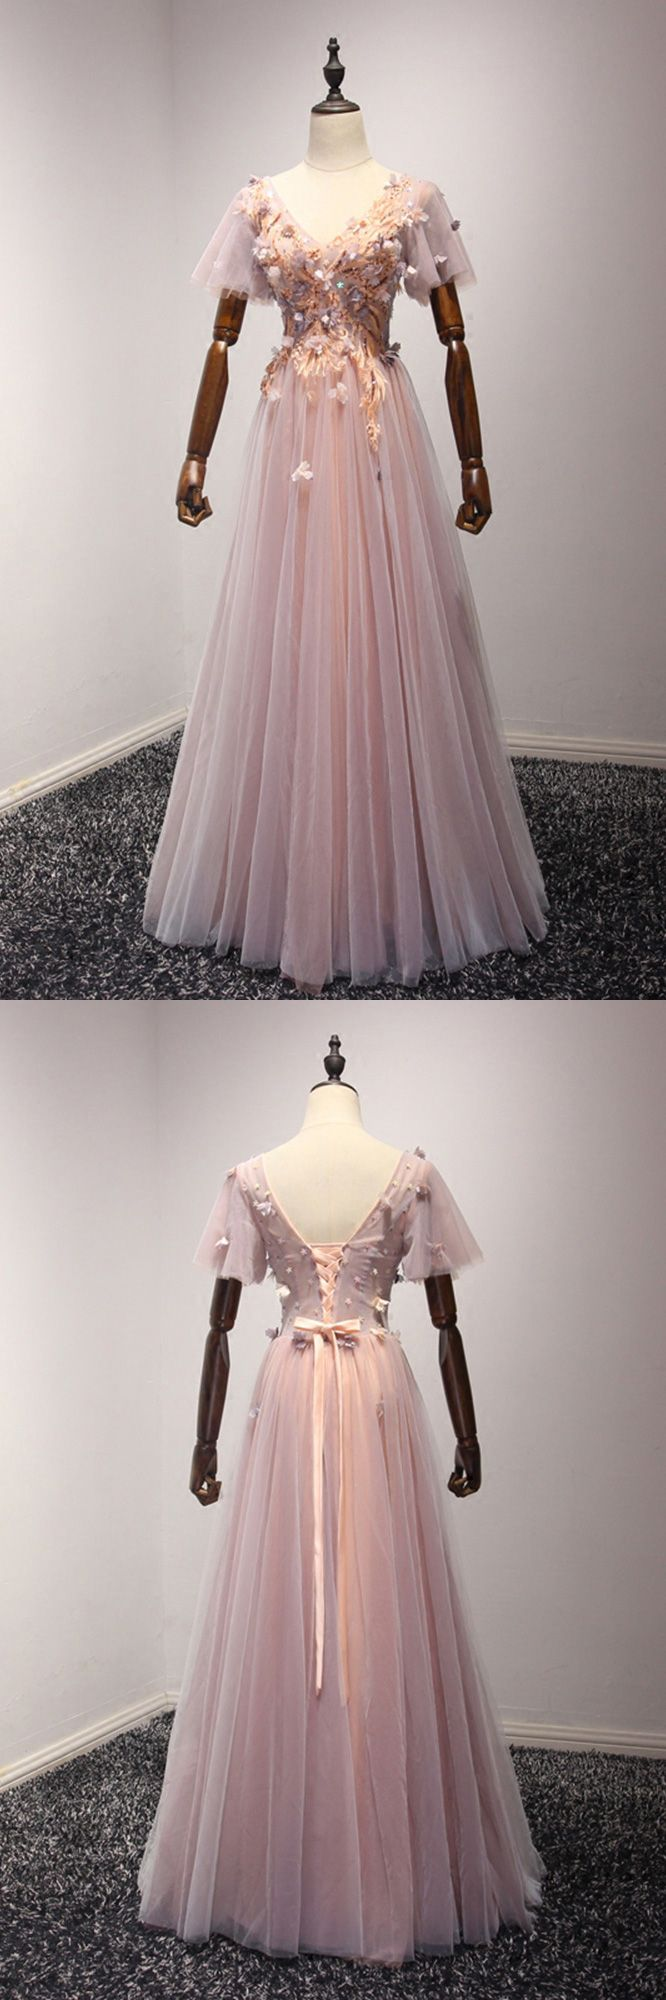 6857e22581ec8 Only $169, Outstanding Applique Pink Prom Dress Long With Short Puffy  Sleeves #AKE18055 at #SheProm. SheProm is an online store with thousands of  dresses, ...